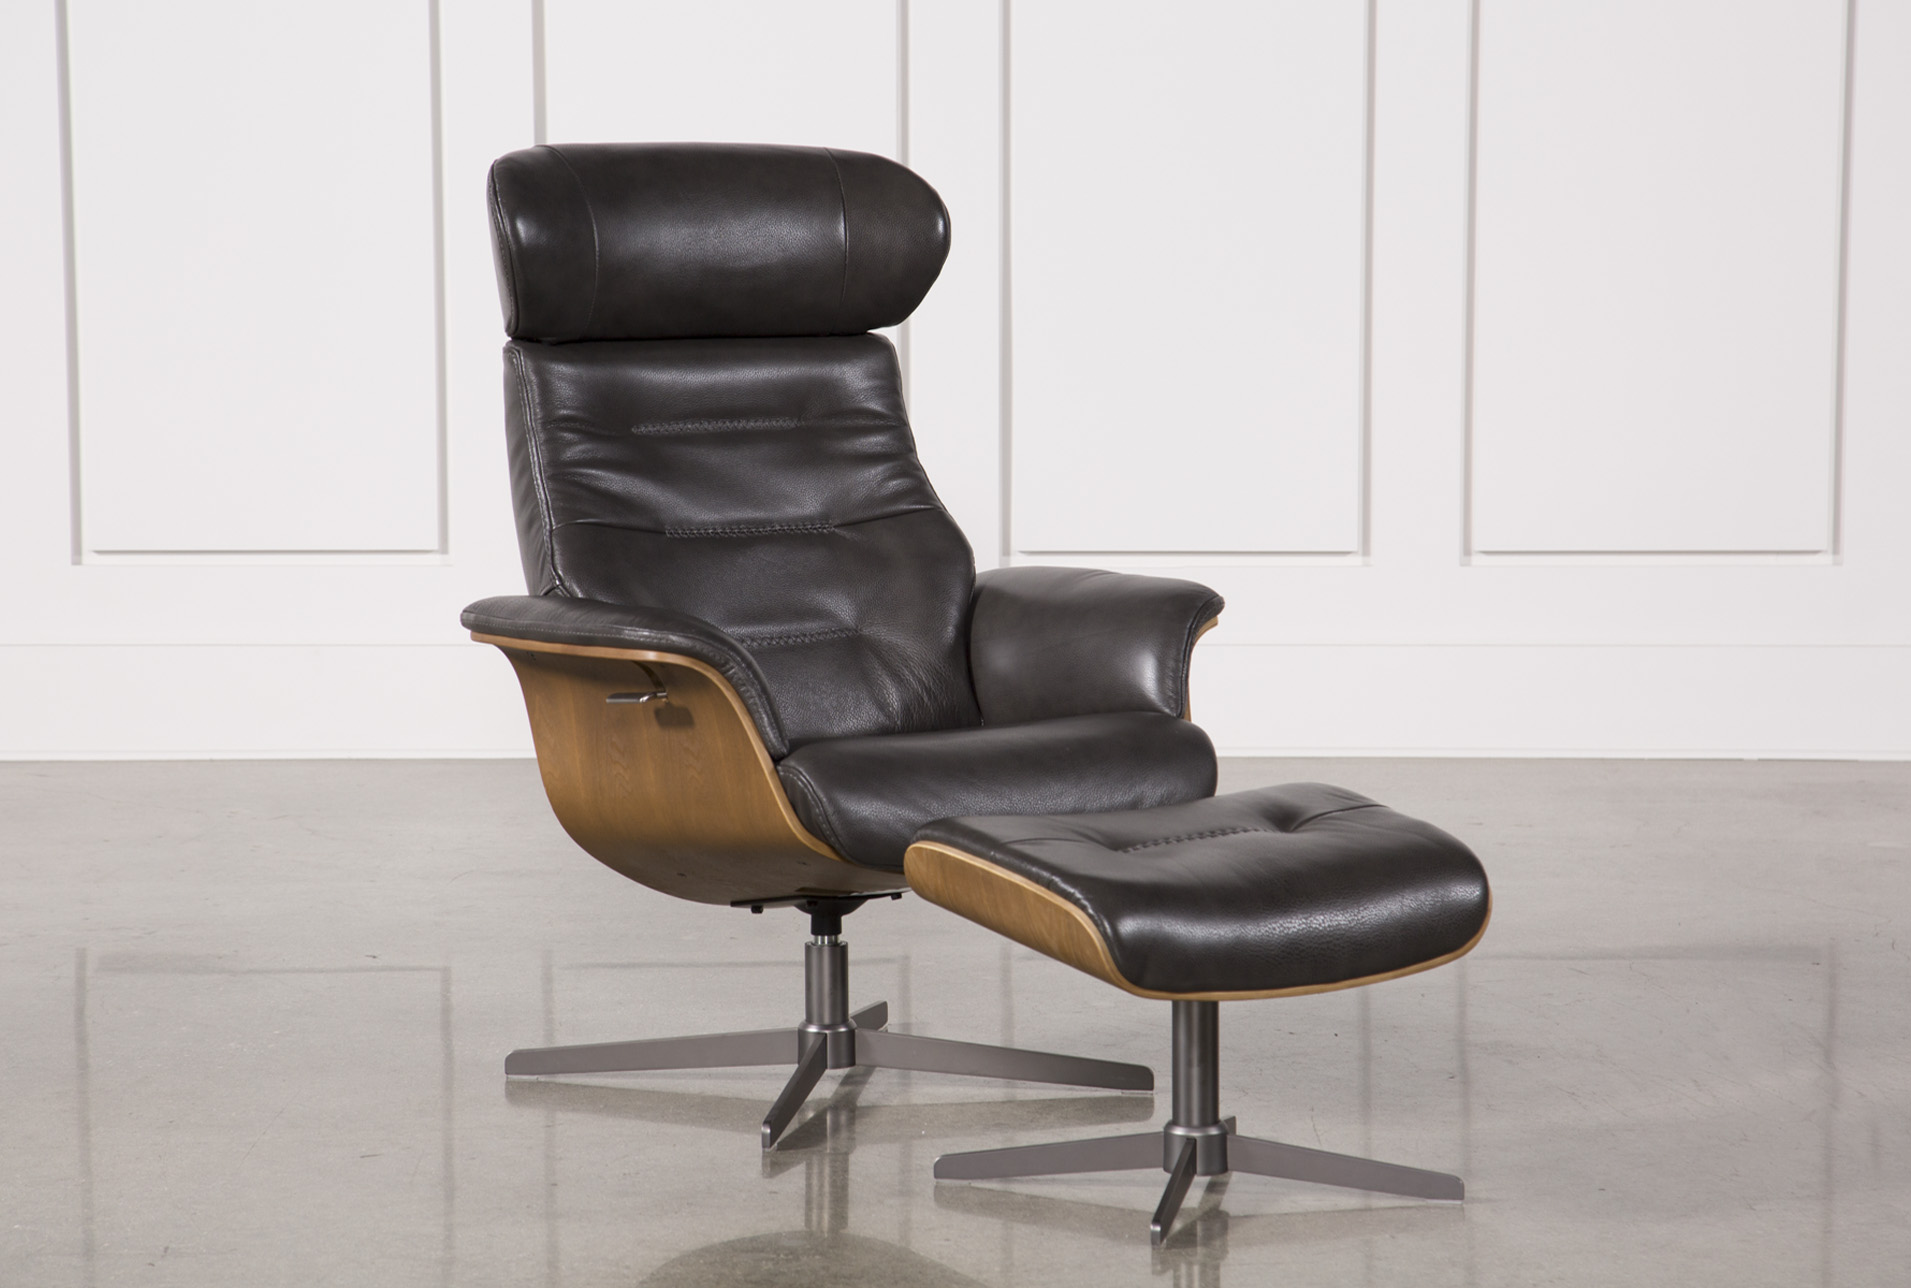 Amala Dark Grey Leather Reclining Swivel Chair U0026 Ottoman   360